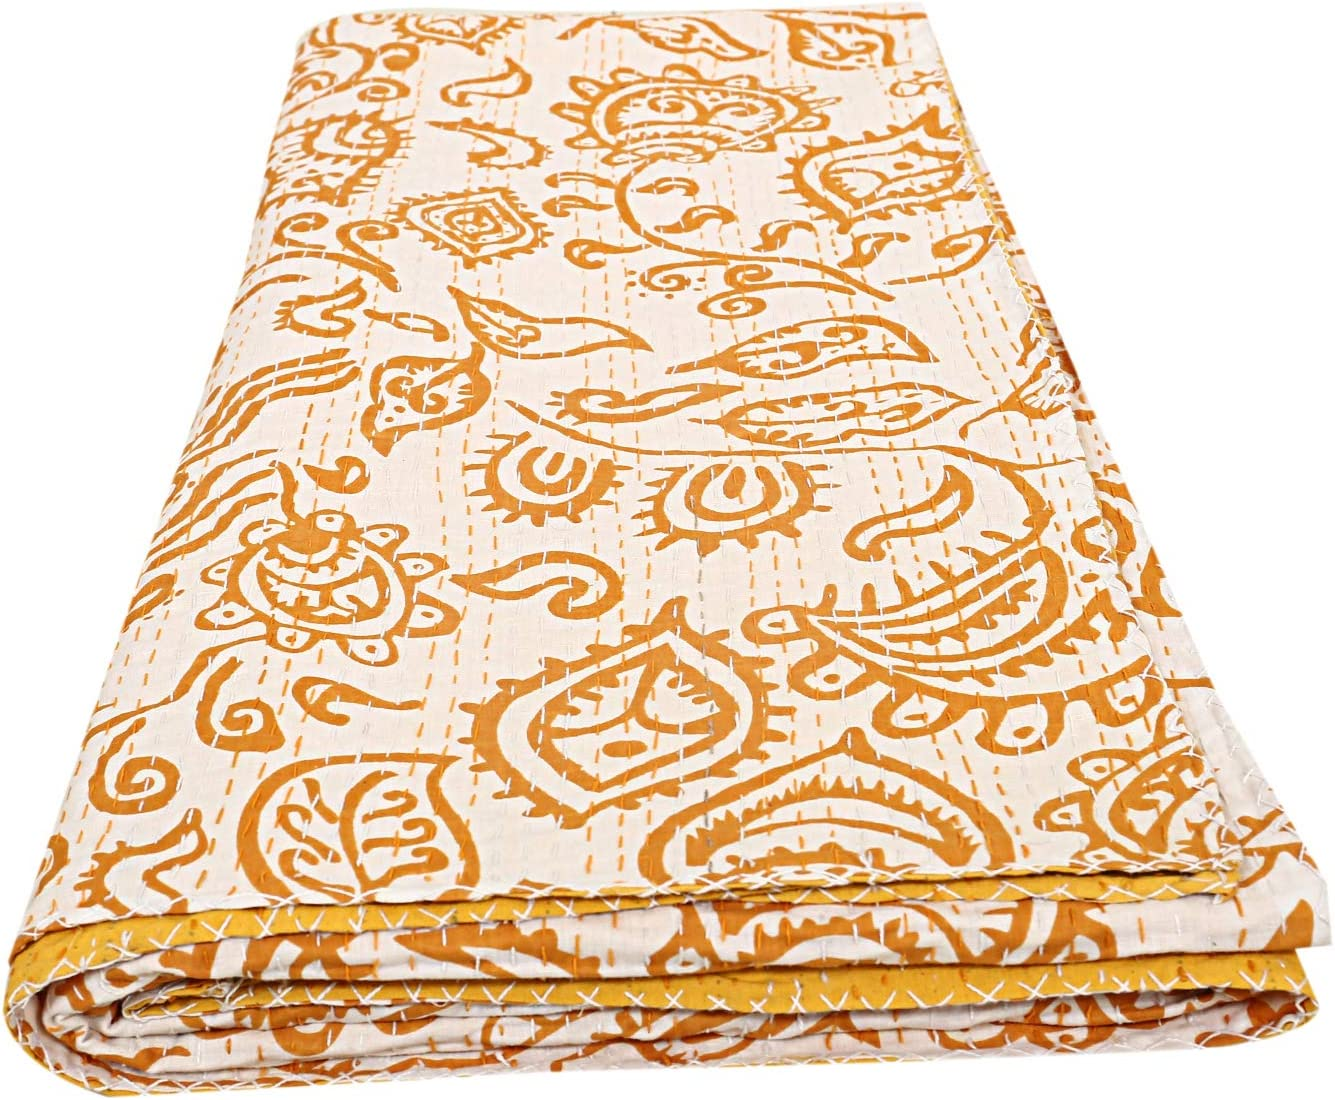 My Creation Bohemian Yellow Floral Printed Kantha Blanket Indian Handmade Kantha Quilts Queen Size Reversible Bed Cover Throw Bedding Quilts Hand Stitch Comforter